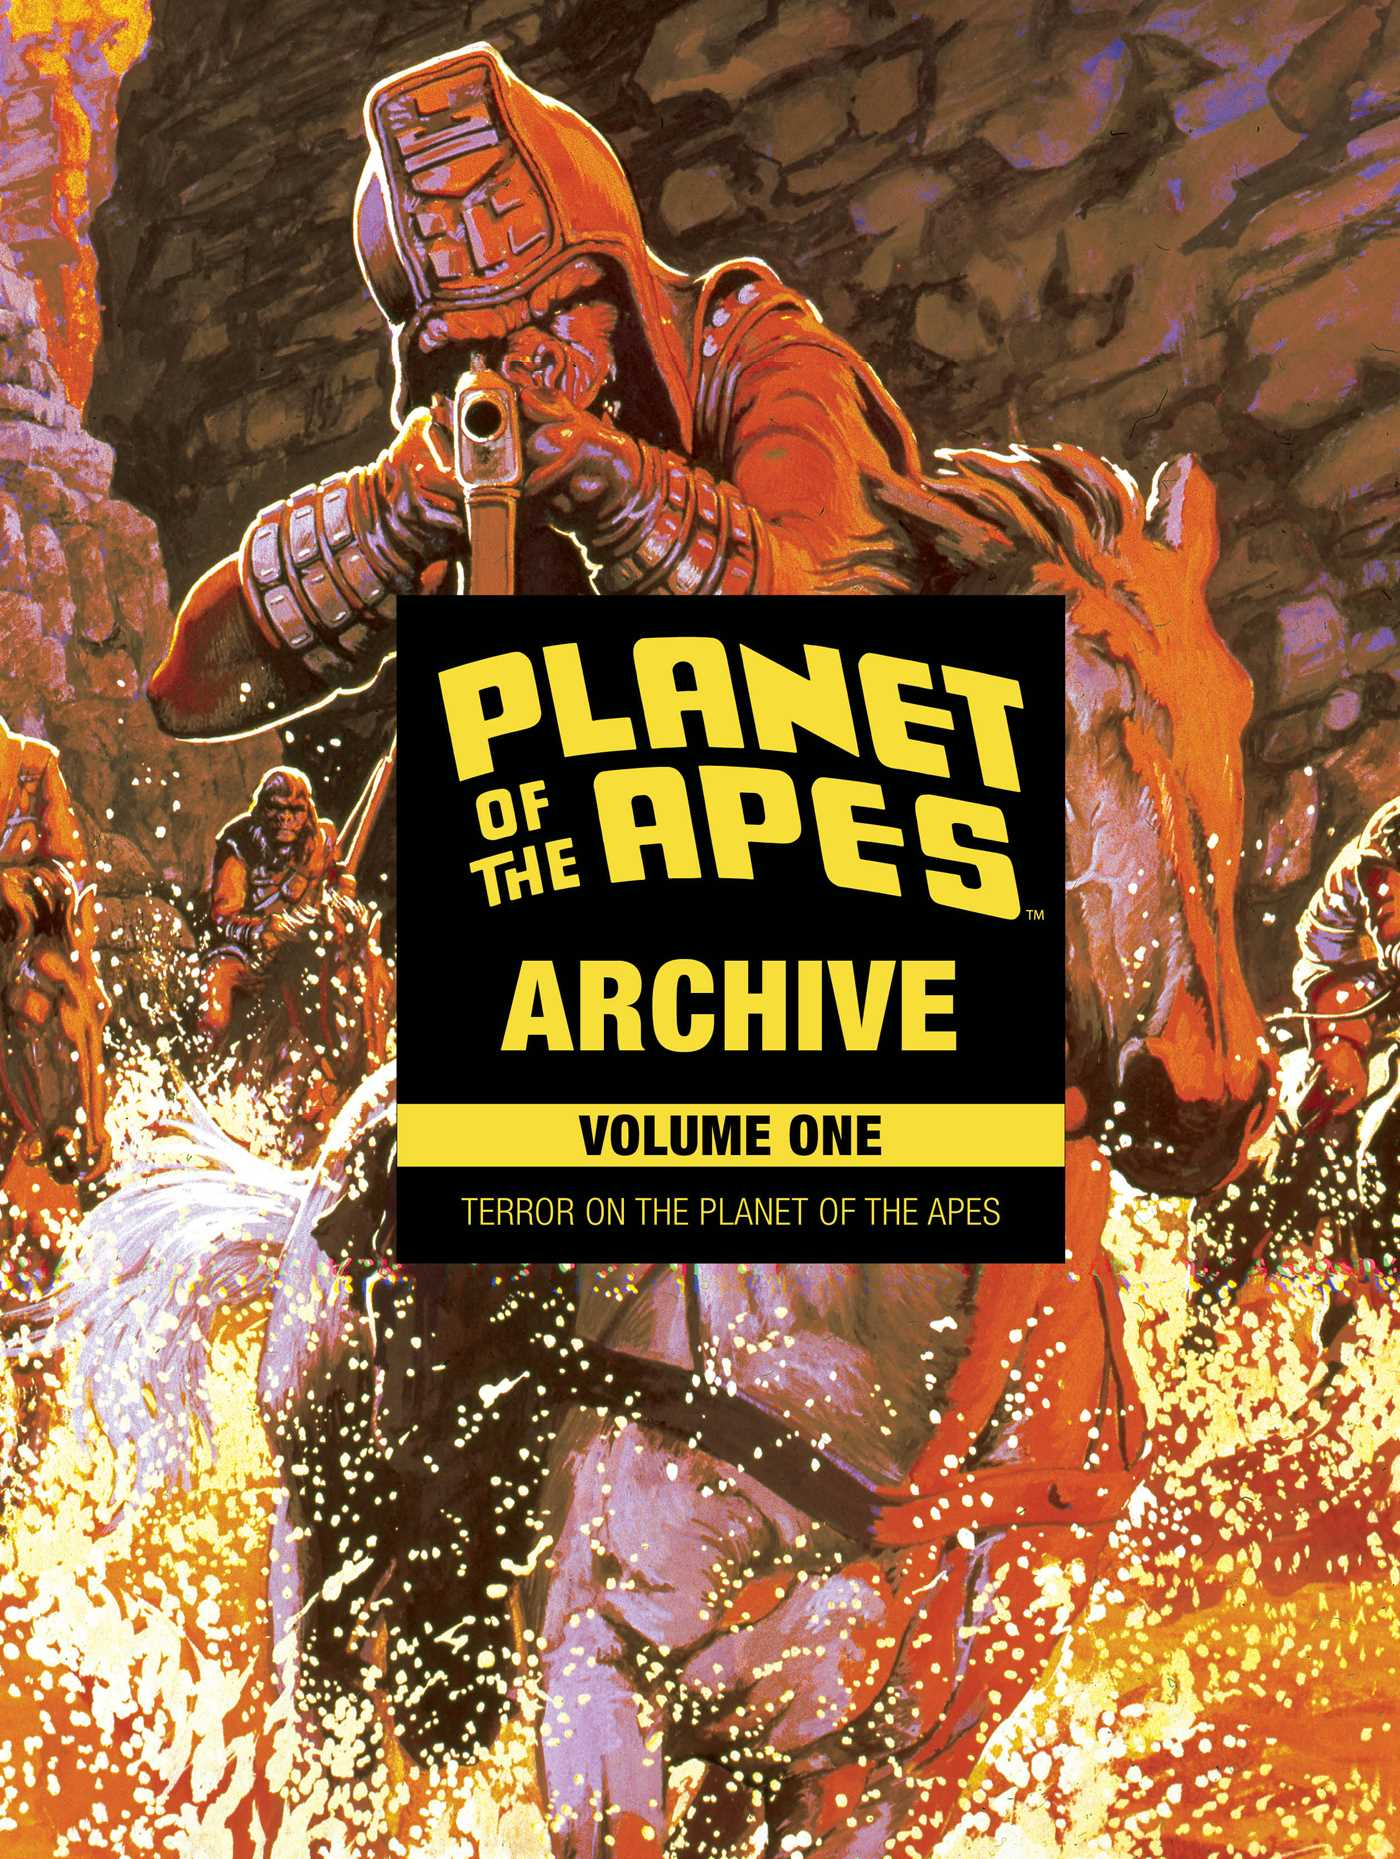 Planet of the apes archive vol 1 9781608869909 hr